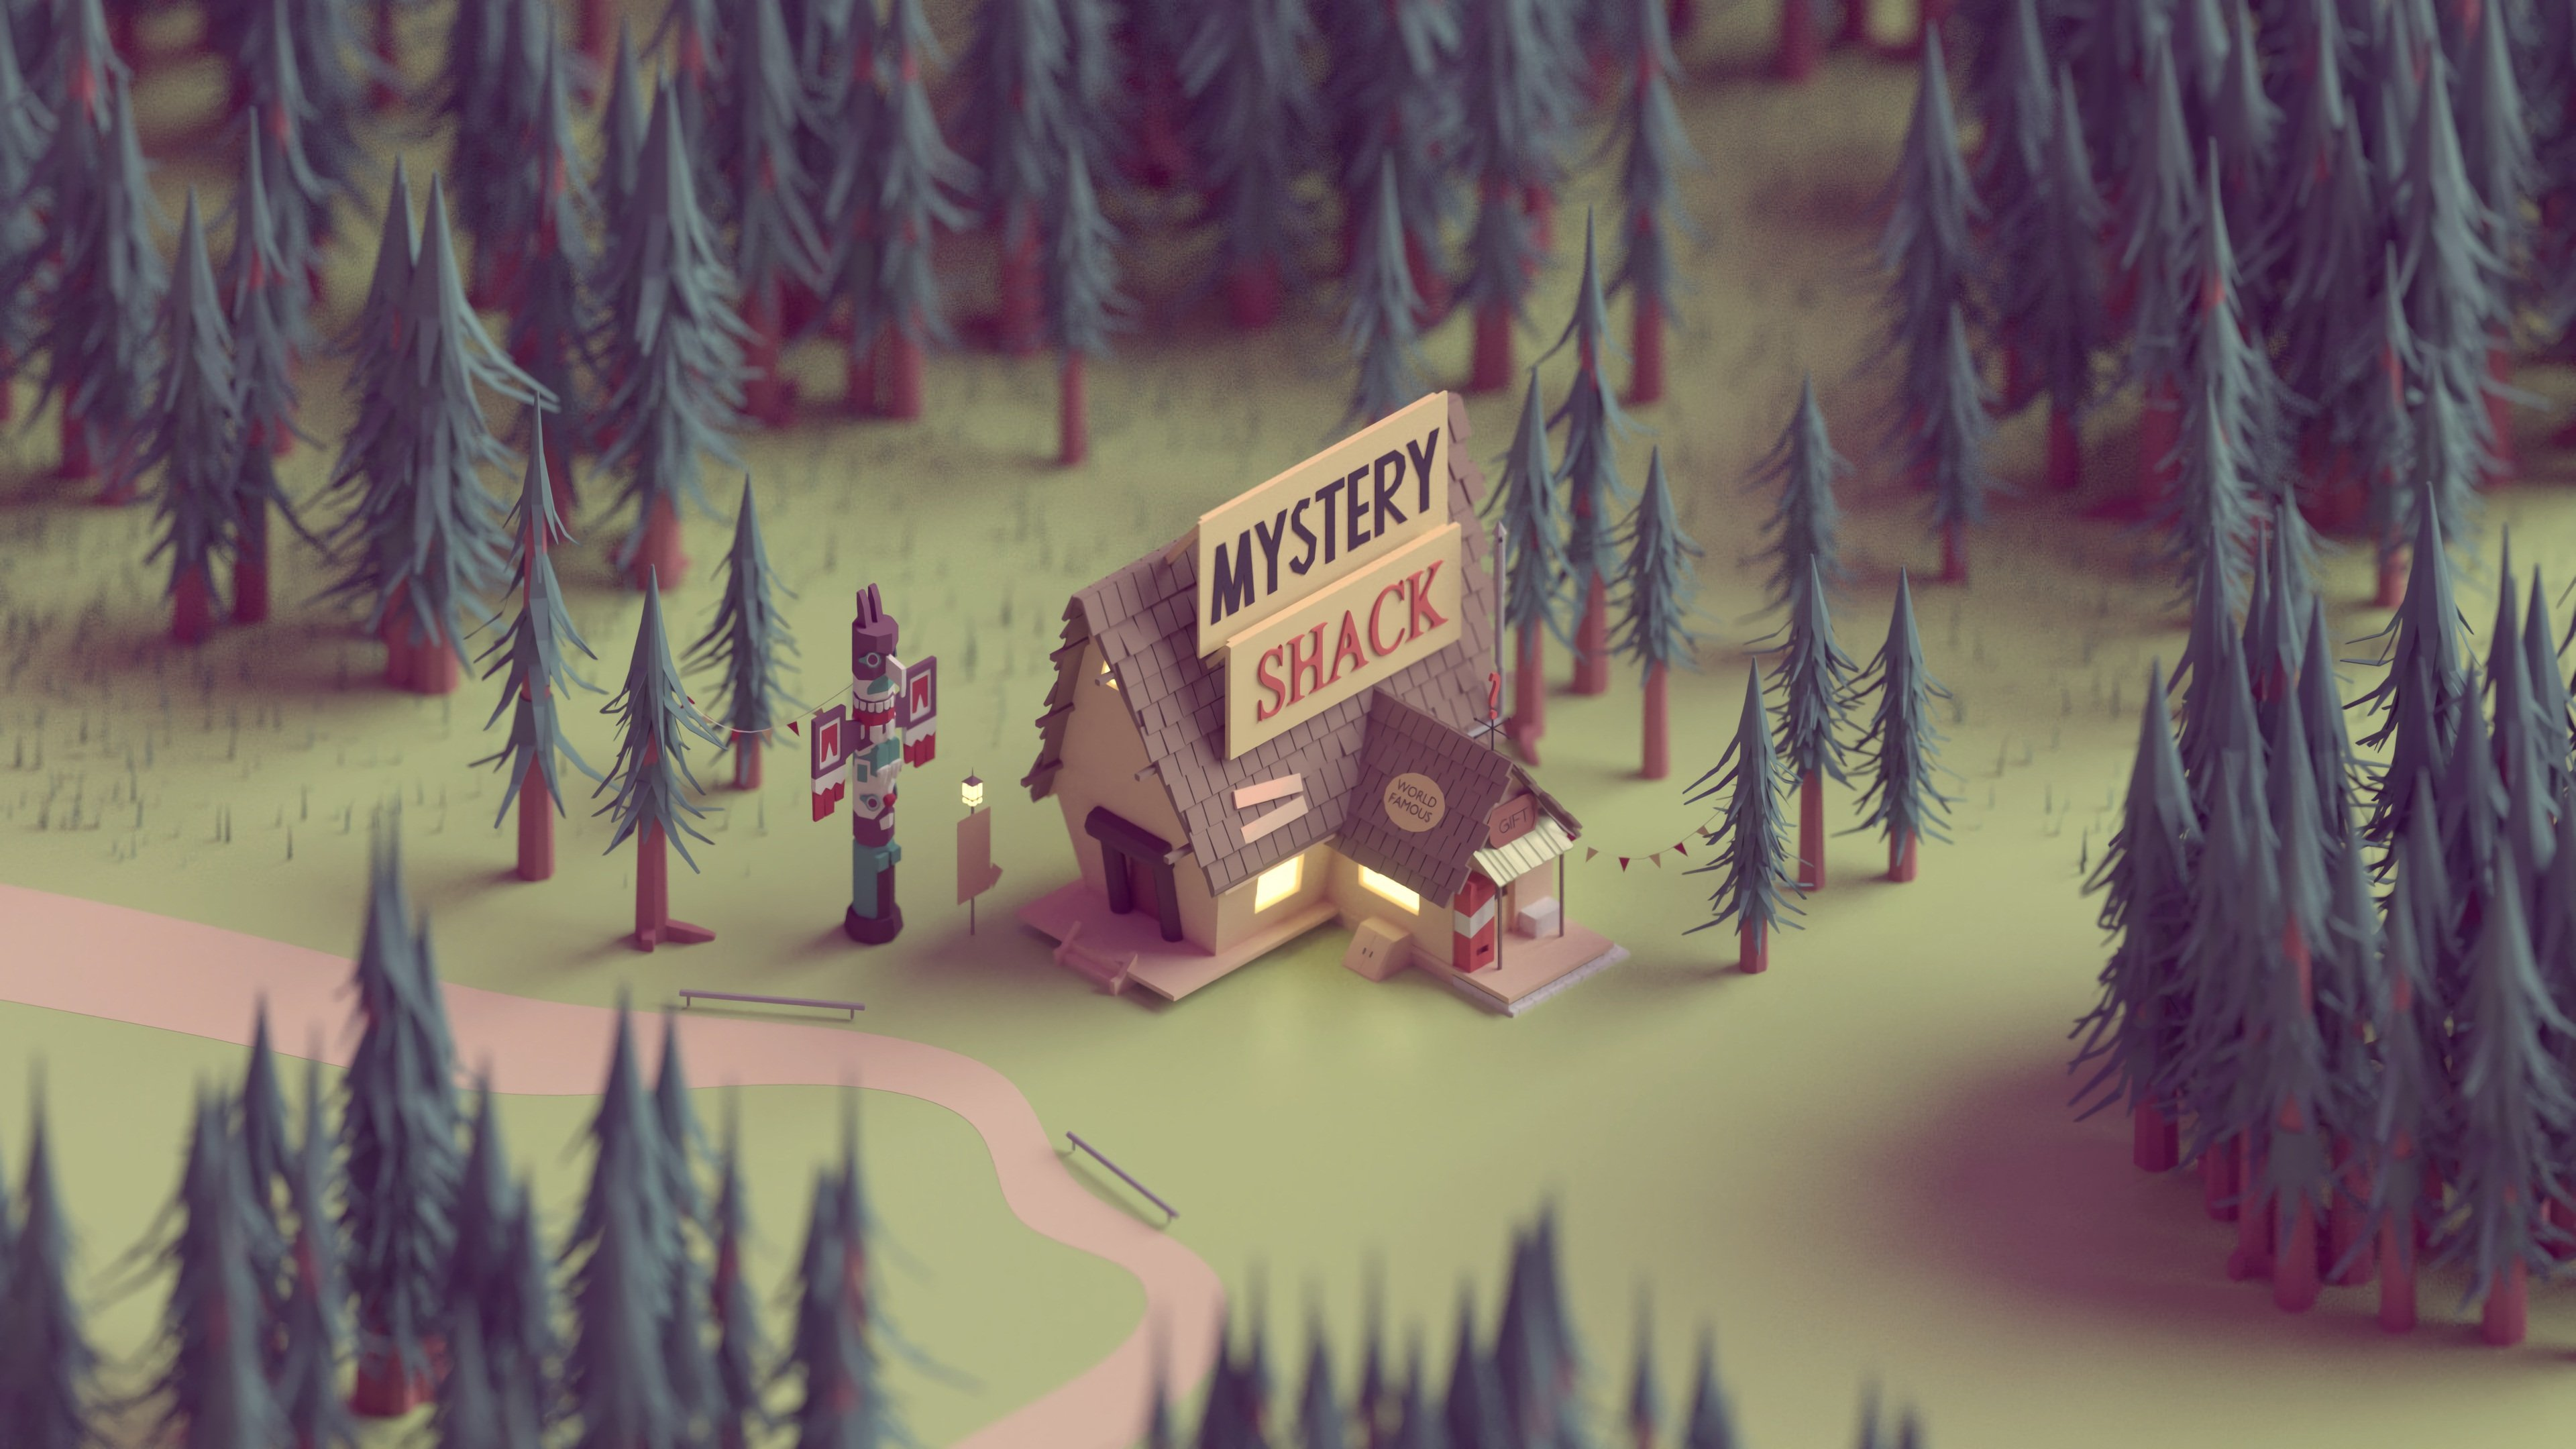 Gravity Falls Hd Wallpaper Mystery Shack Gravity Falls 4k Wallpaper